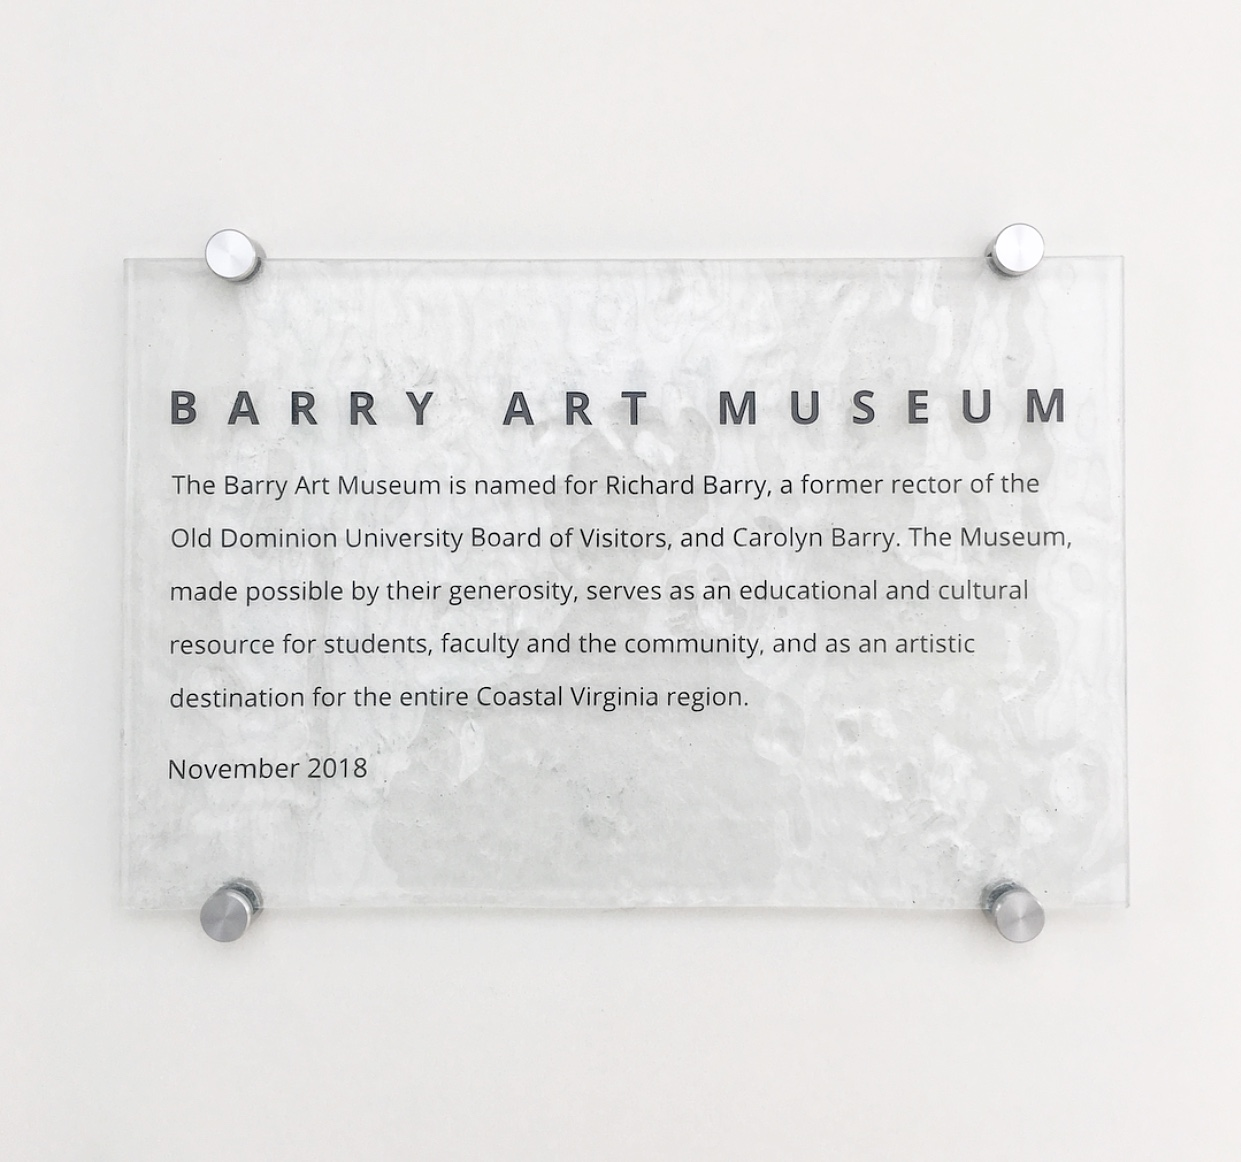 Barry Art Museum